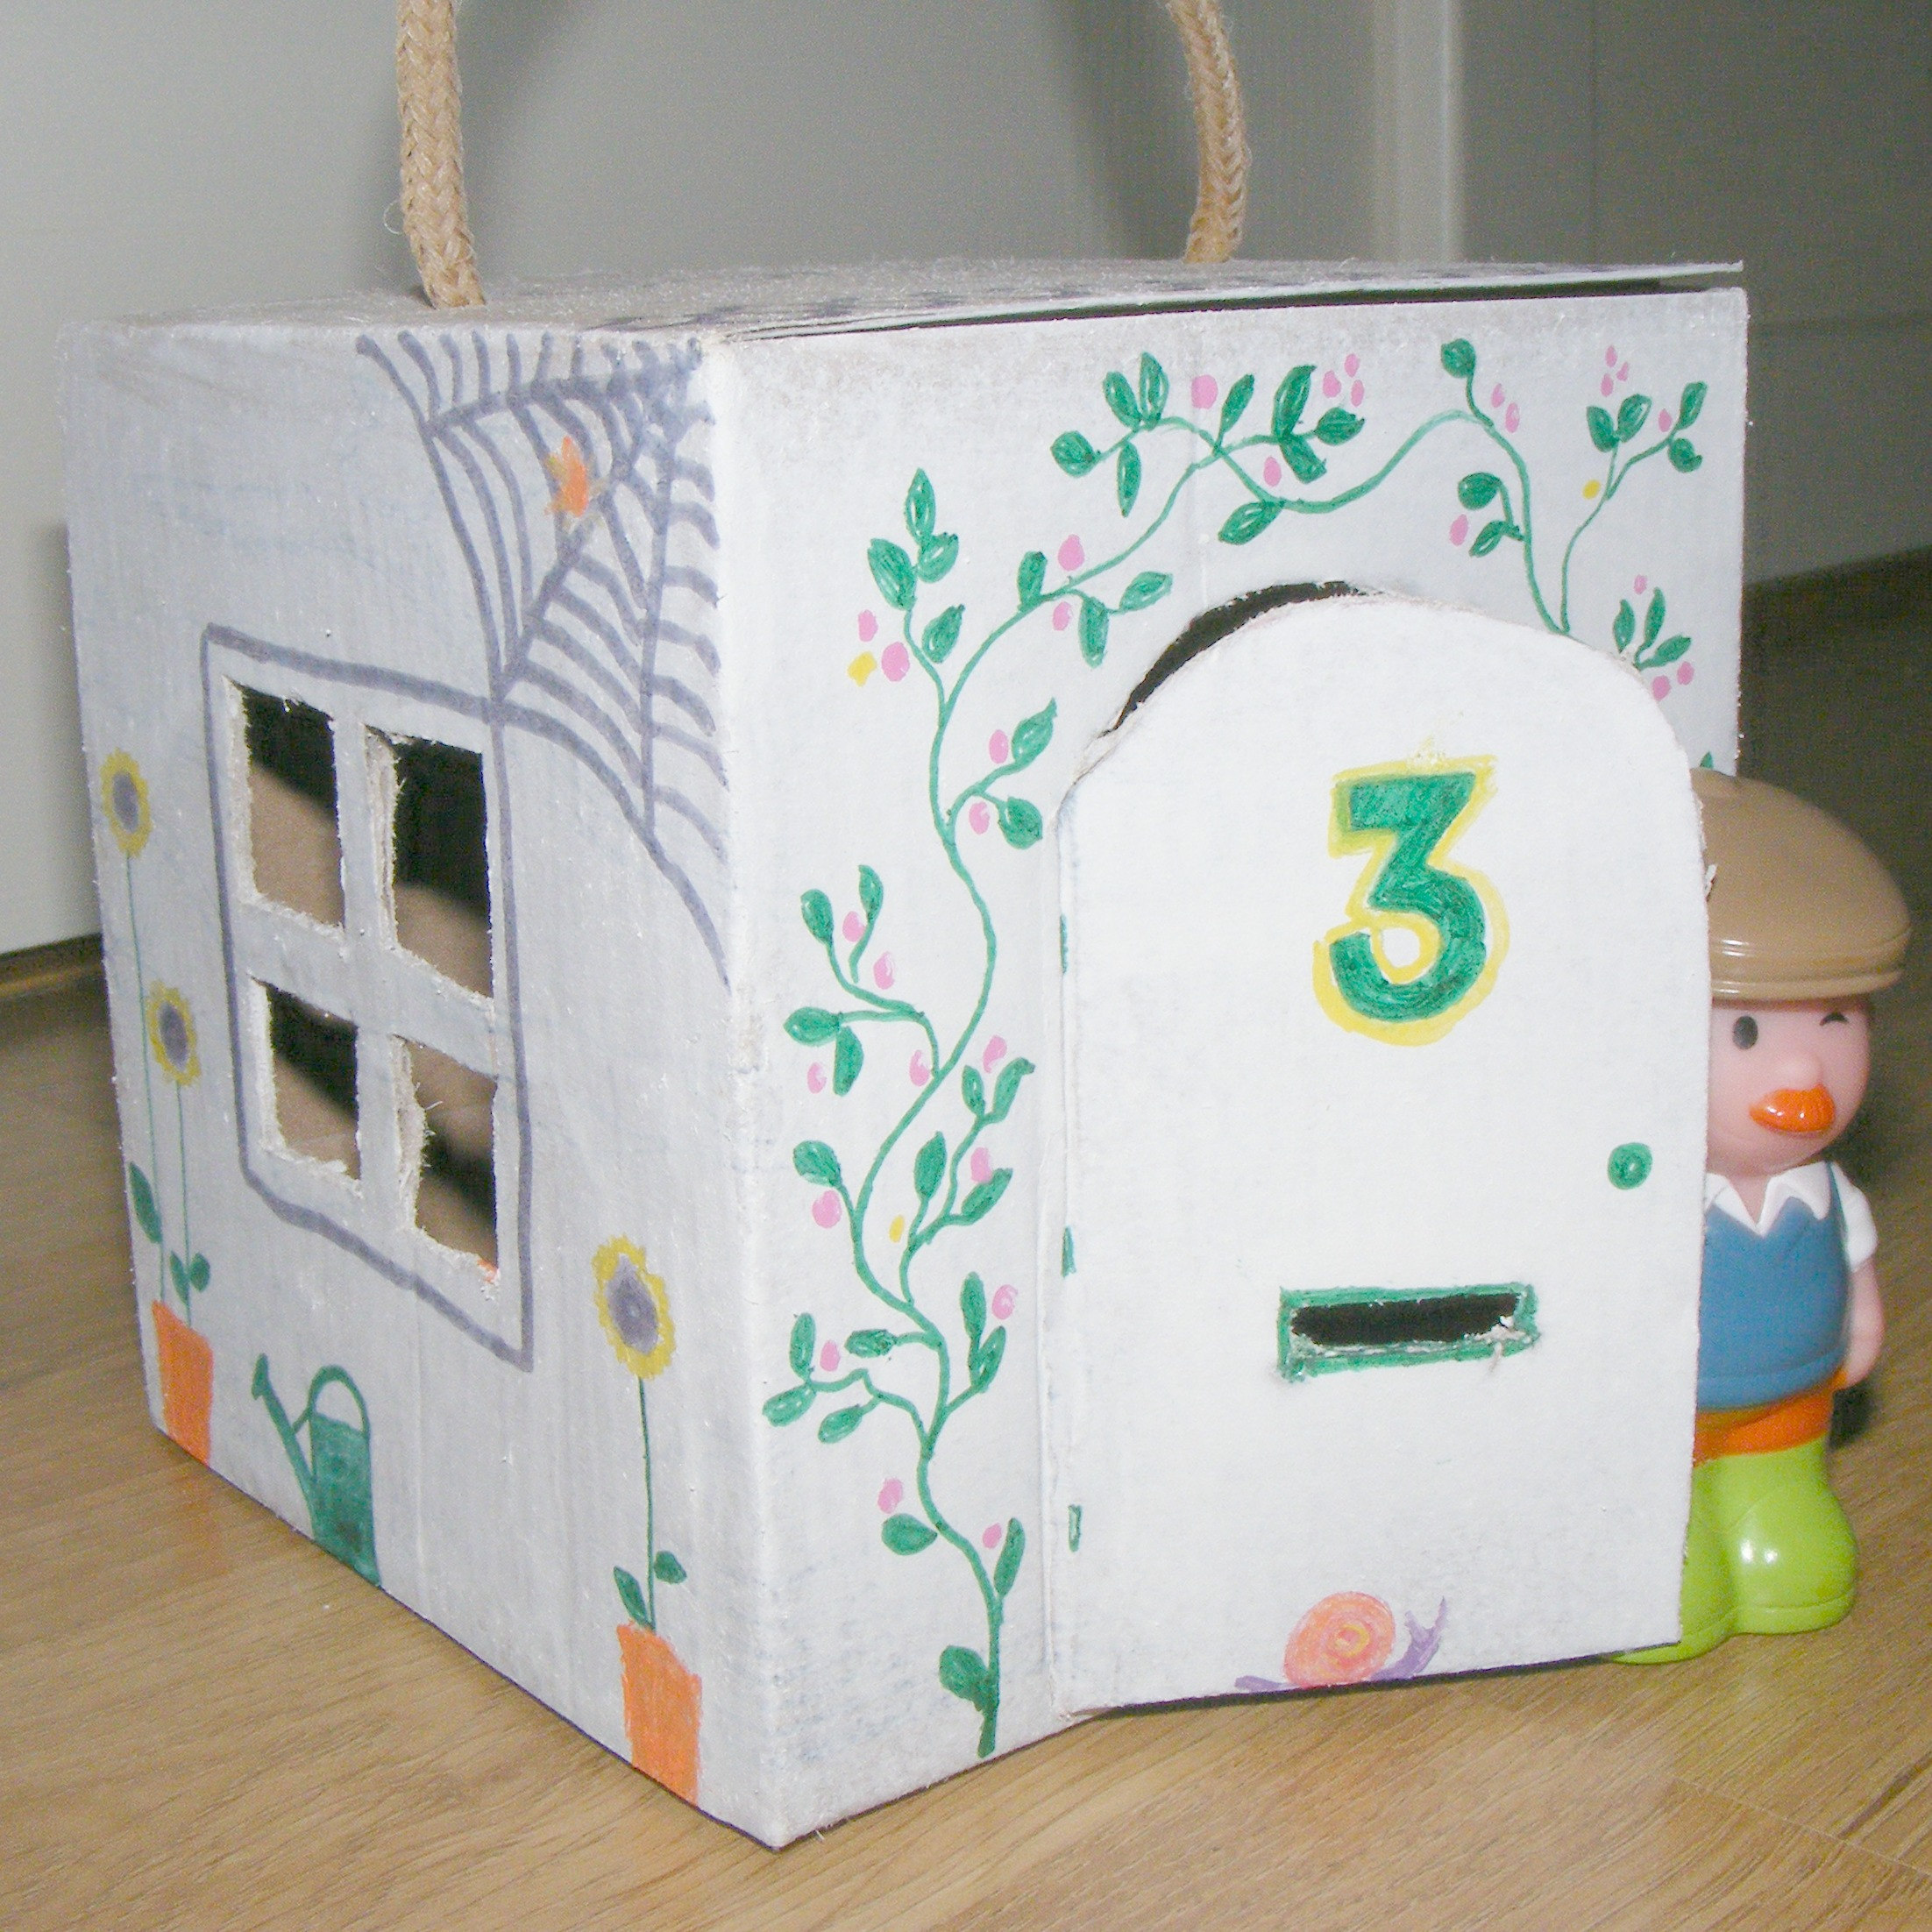 Dolls house with recycled sock box